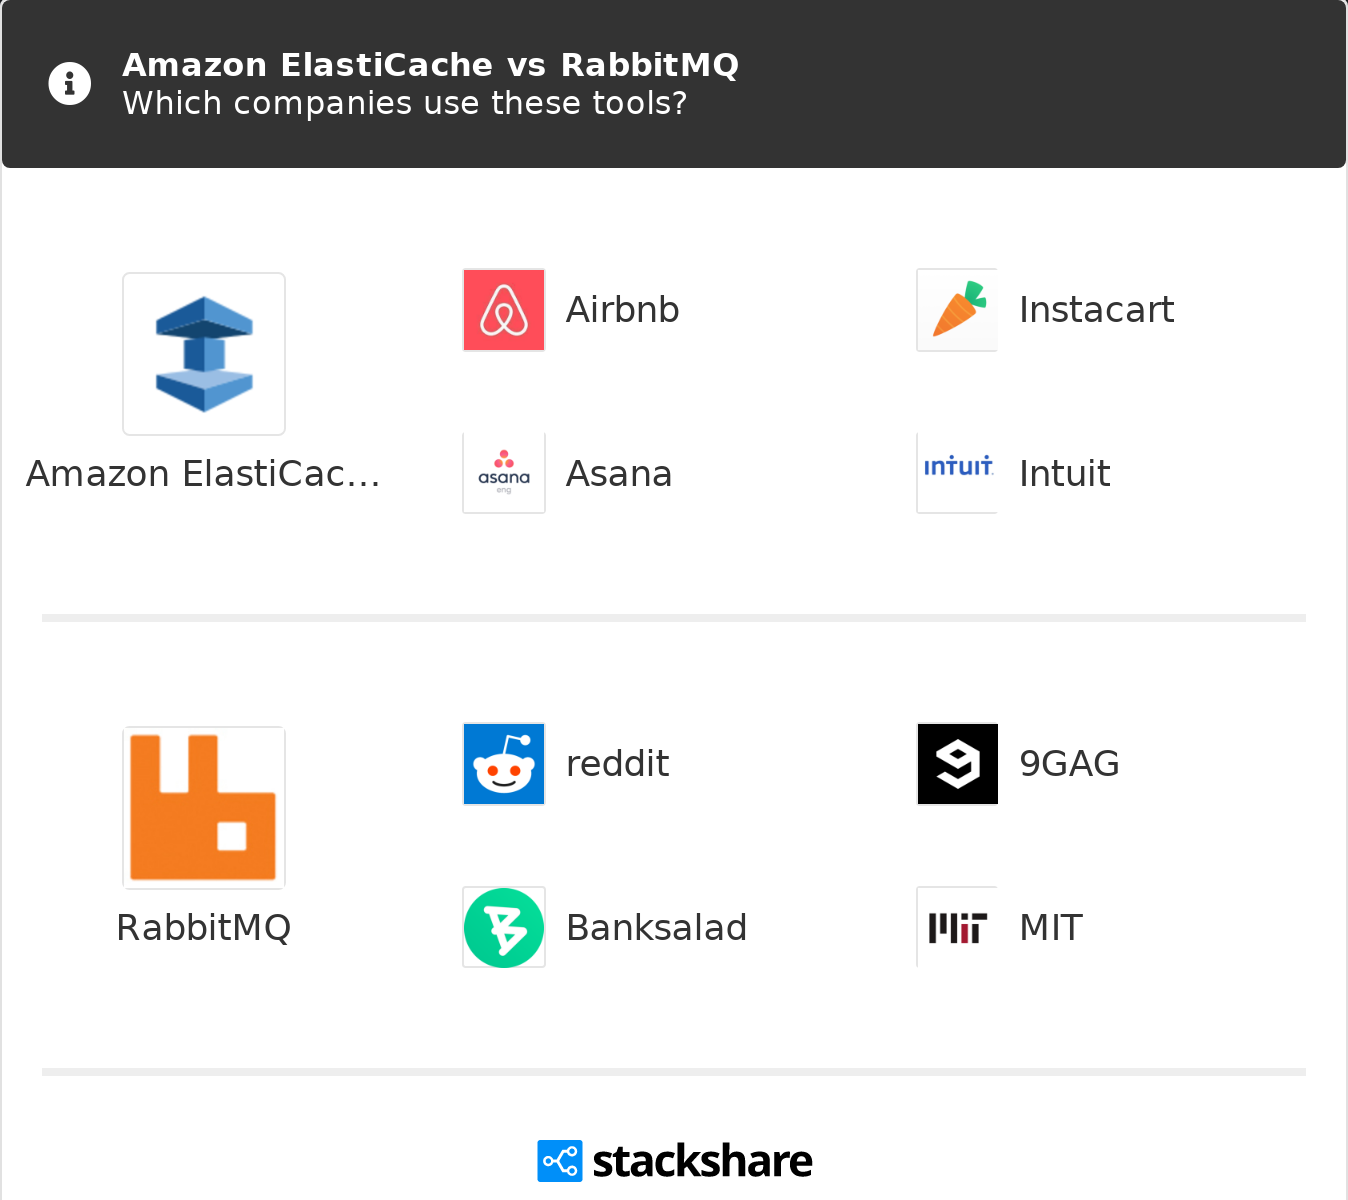 Amazon ElastiCache vs RabbitMQ | What are the differences?